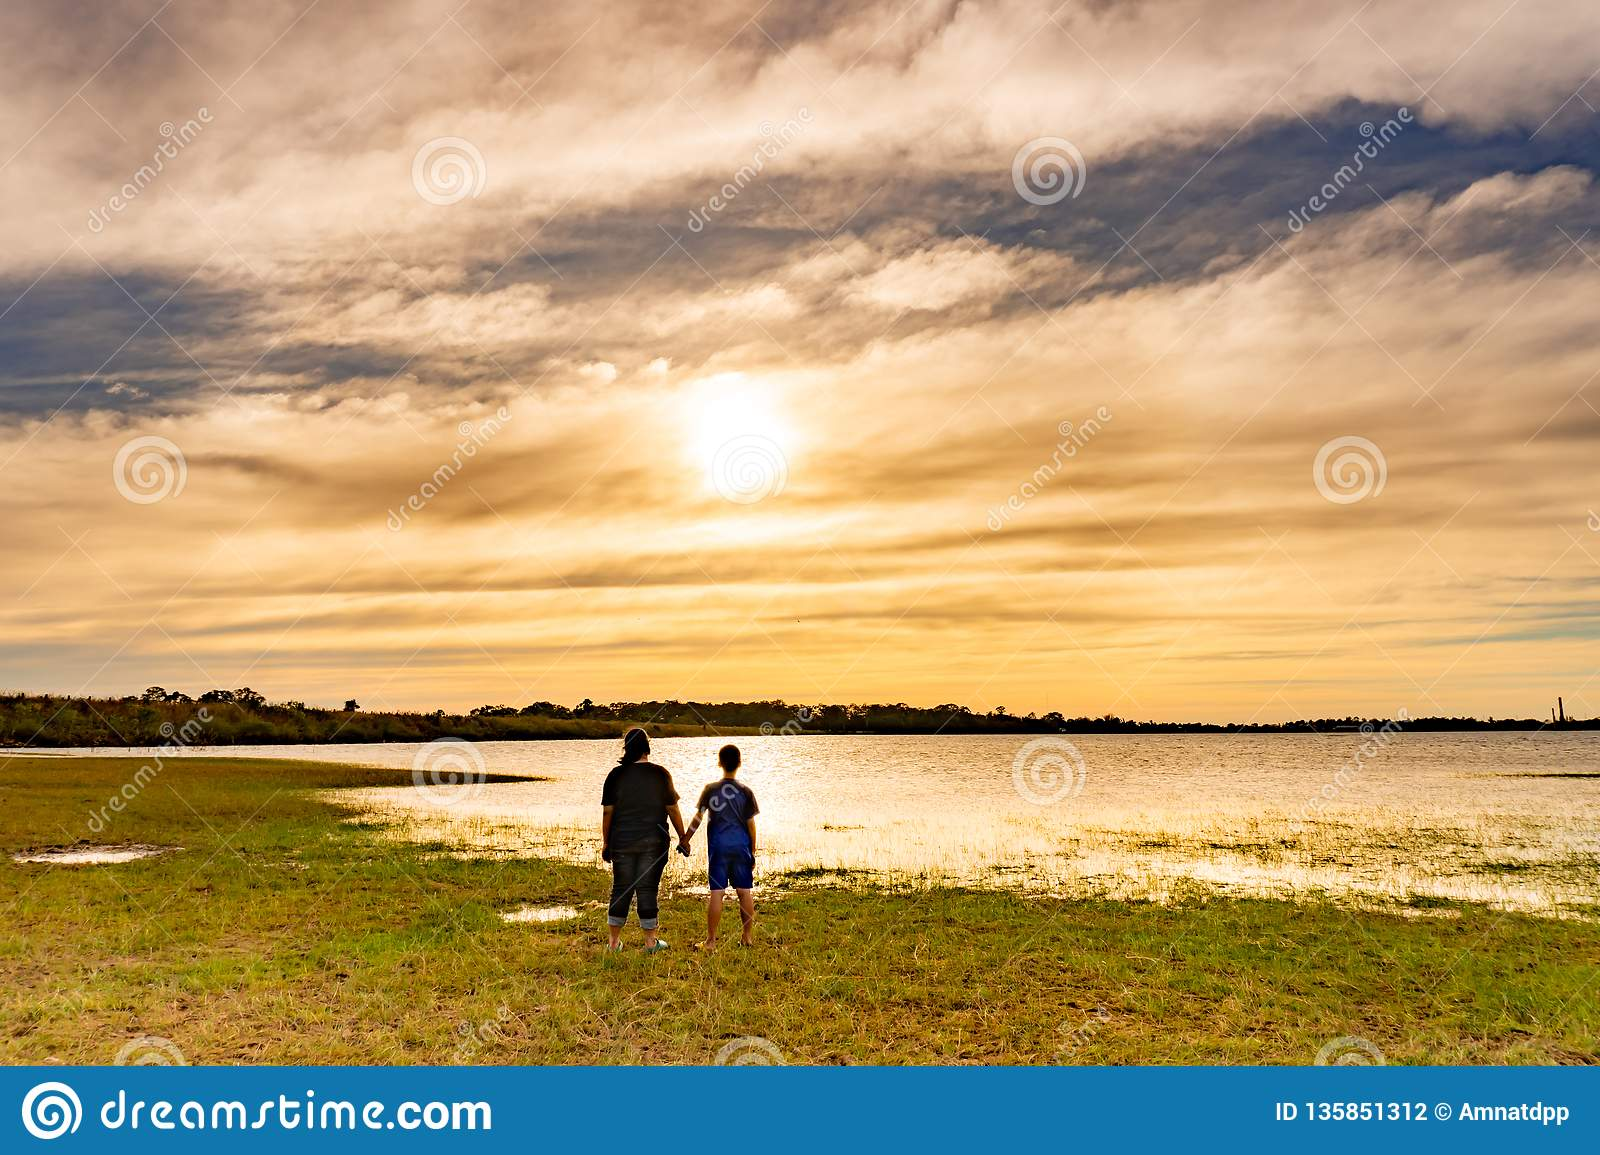 Boy and girl looking at sunset